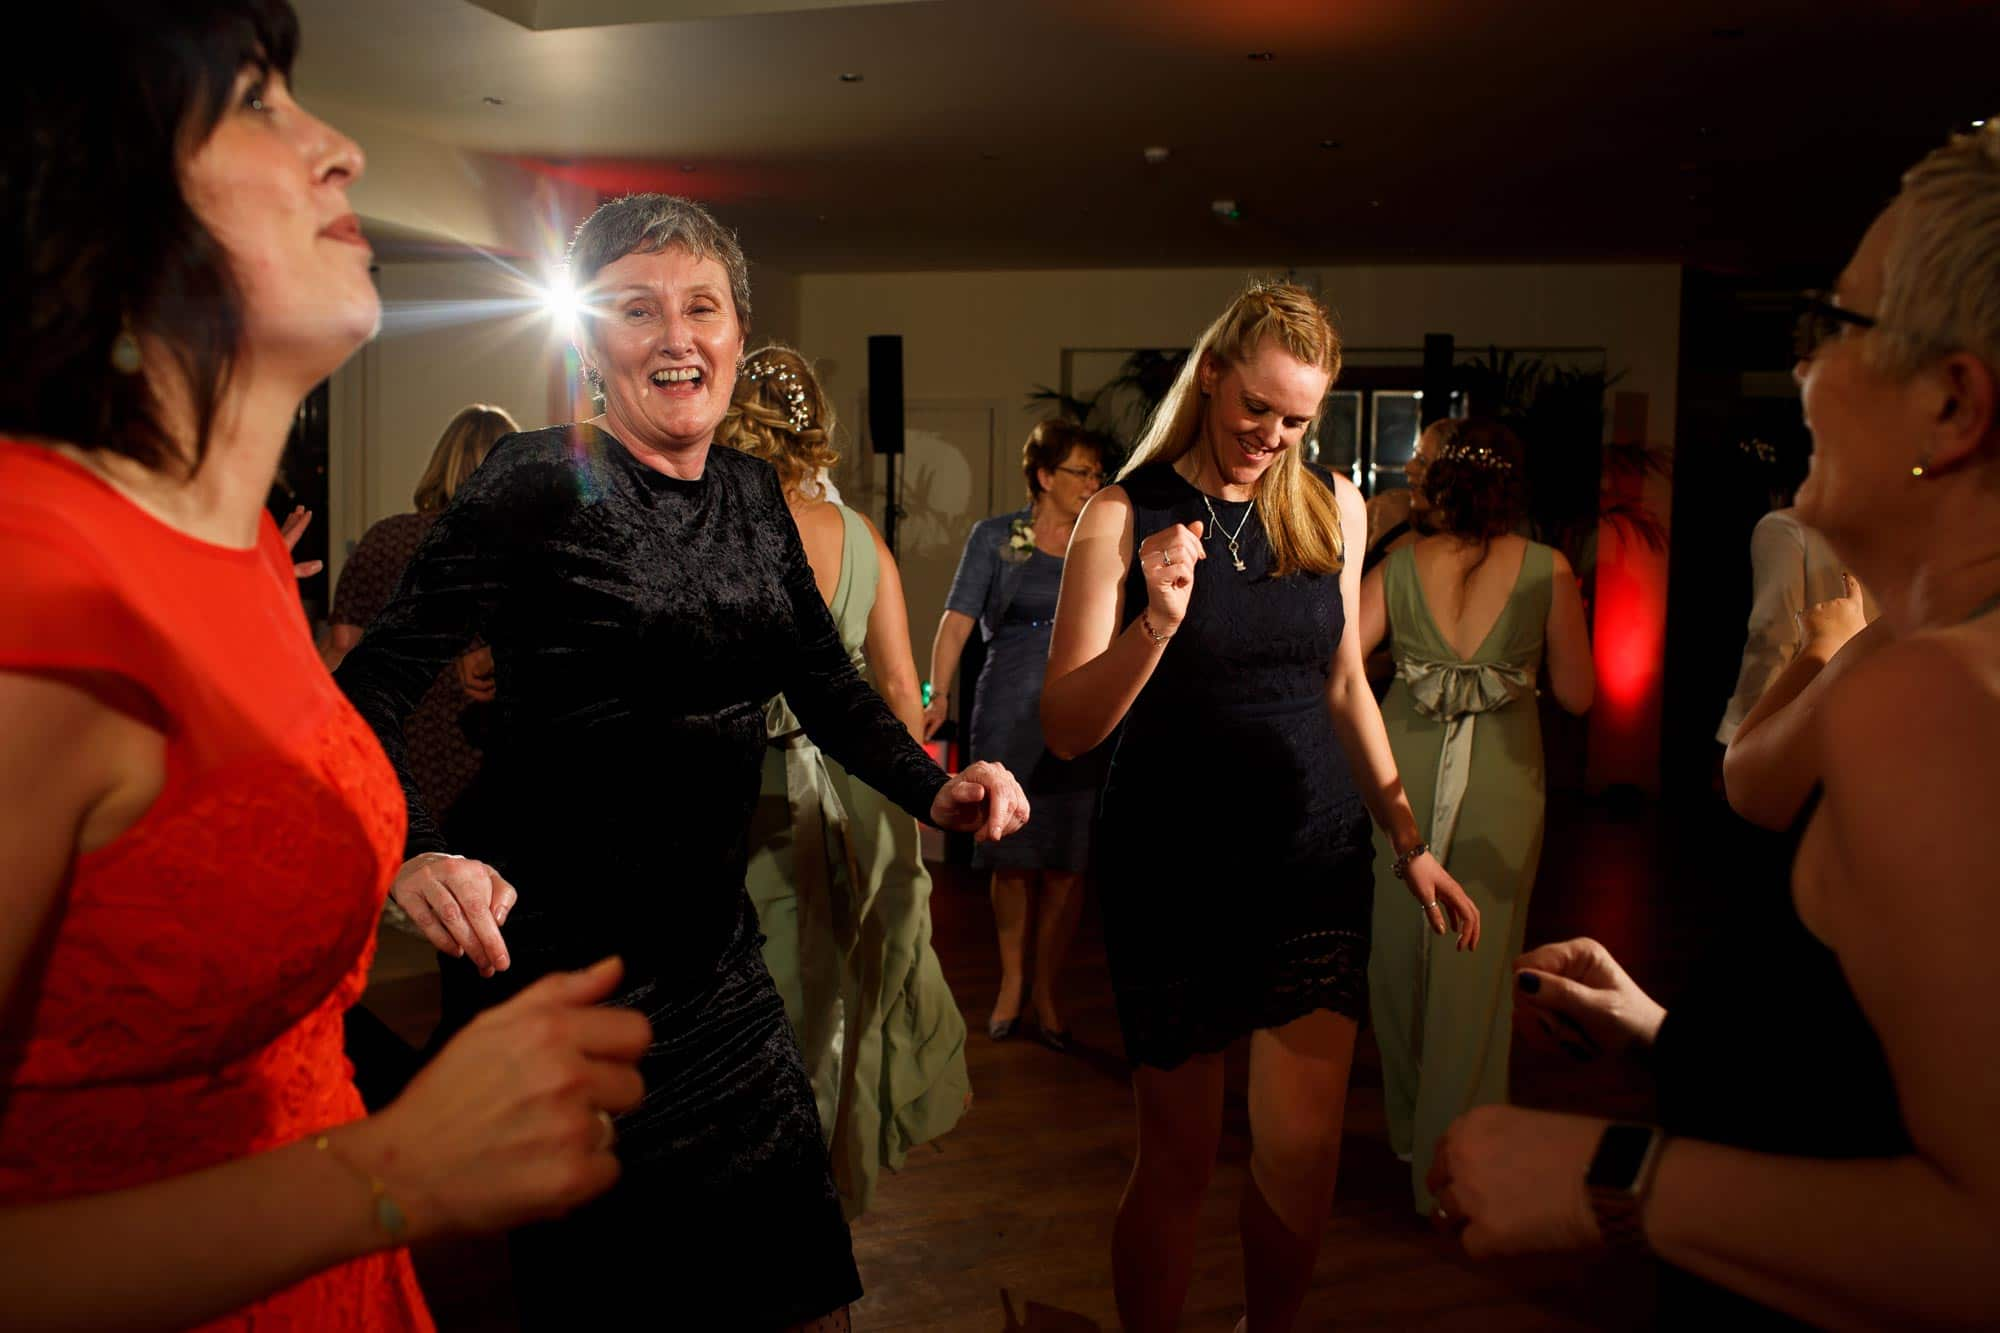 Wedding guests dancing at Mitton Hall wedding